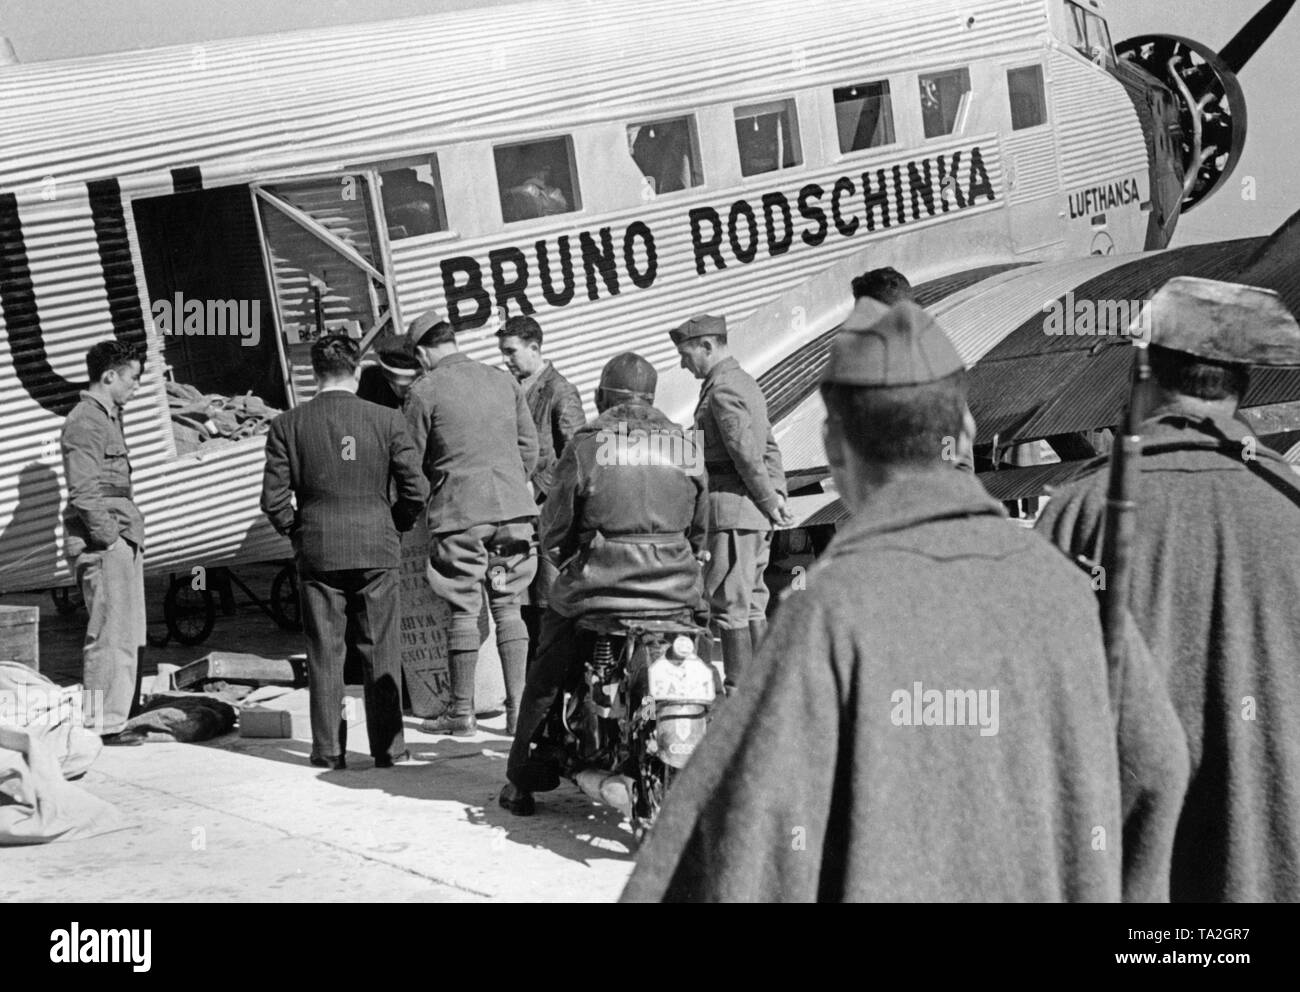 Photo of a German Junkers Ju 52 of the Deutsche Lufthansa AG 1939 at Salamanca airport, Castile and Leon, Spain. The aircraft bears the name 'Bruno Rodschinka '. It is just being loaded. In the foreground, two policemen of the Guardia Civil. During the Civil War, the Lufthansa and the Spanish Iberia (founded in 1927) carried out scheduled flights mostly with German pilots in the Spanish national zone from 1937. The aircrafts were provided by the Deutsche Lufthansa AG. - Stock Image